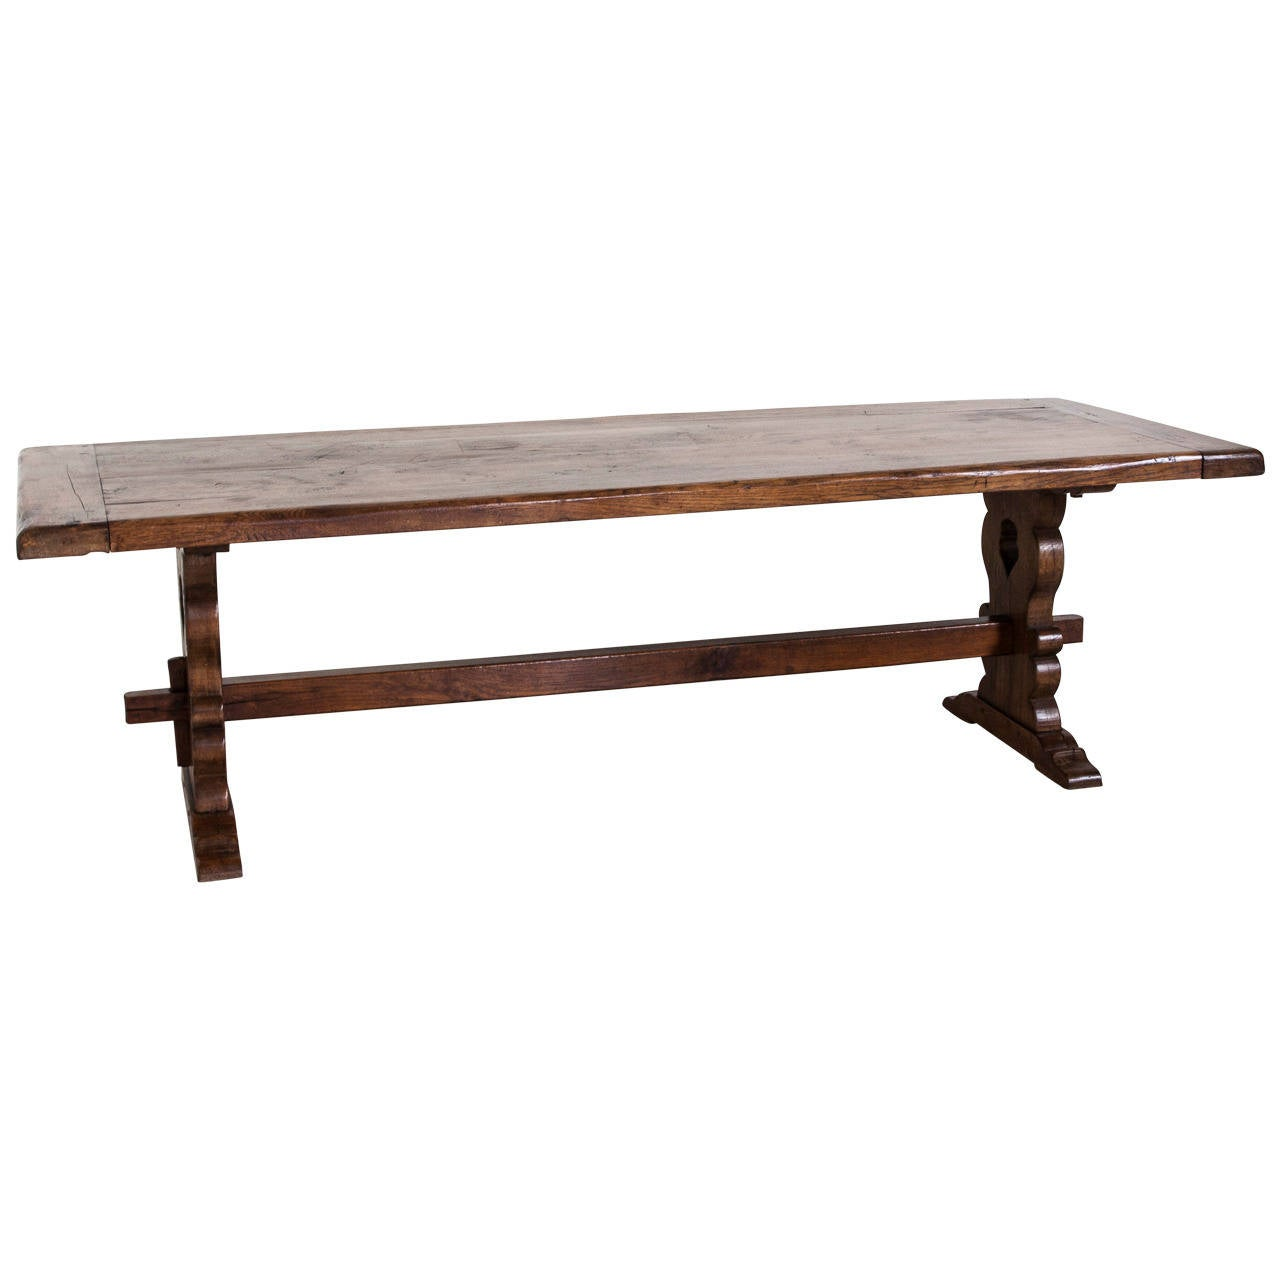 antique french solid oak trestle dining table from normandy circa